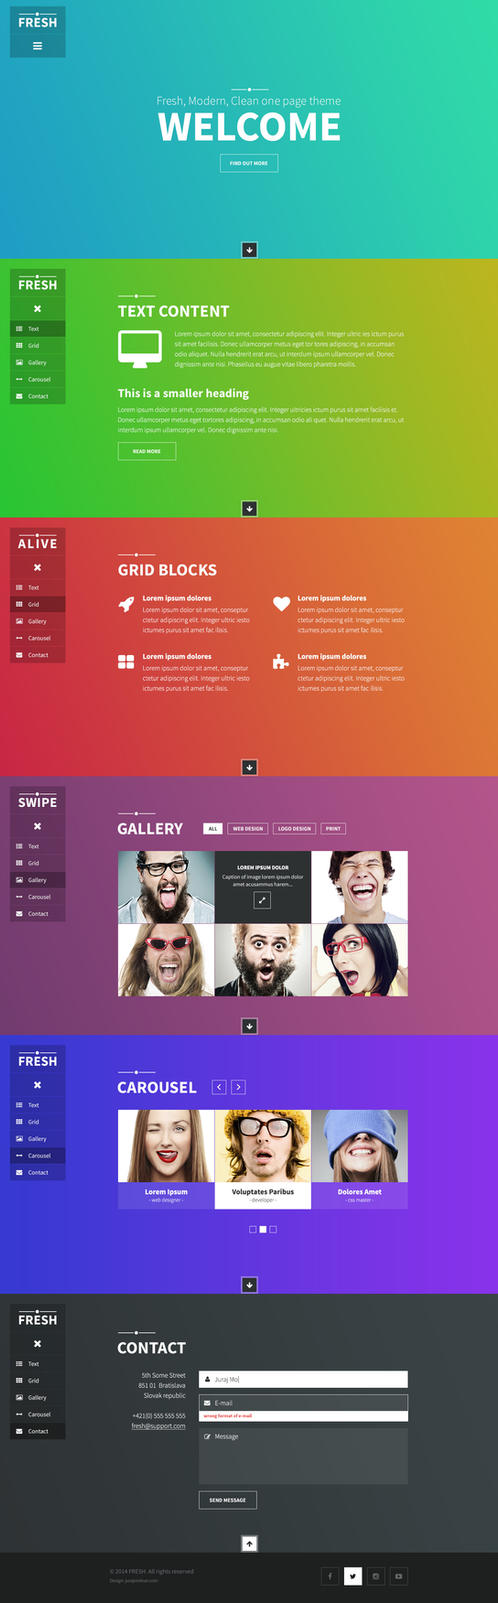 FRESH - boostrap template by jurajmolnar